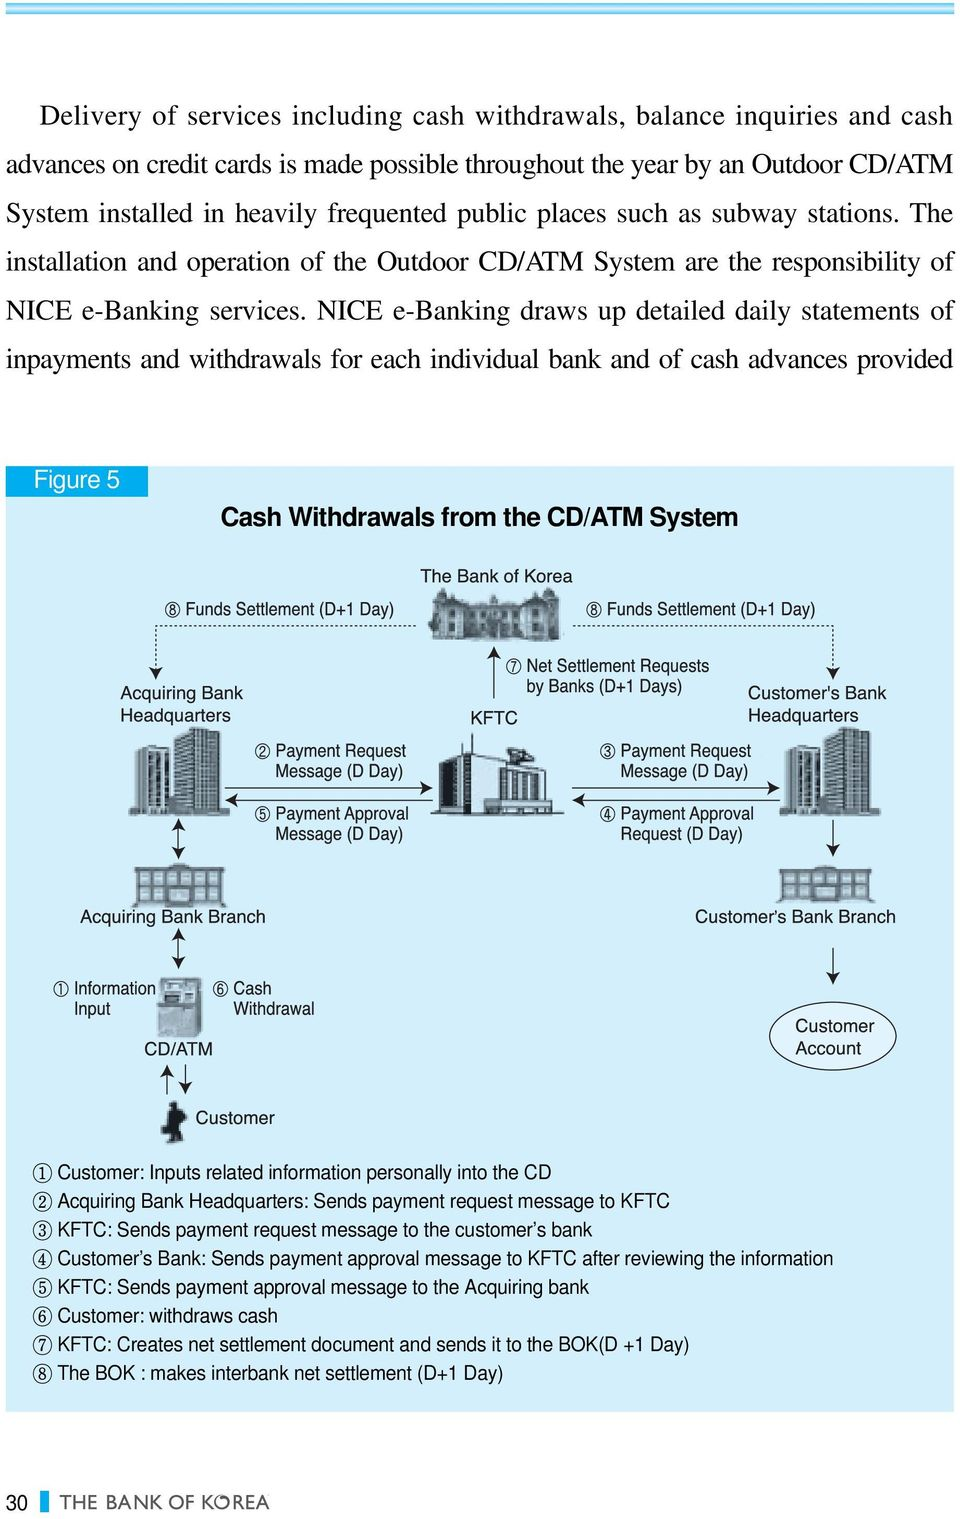 NICE e-banking draws up detailed daily statements of inpayments and withdrawals for each individual bank and of cash advances provided Figure 5 Cash Withdrawals from the CD/ATM System 1 Customer: